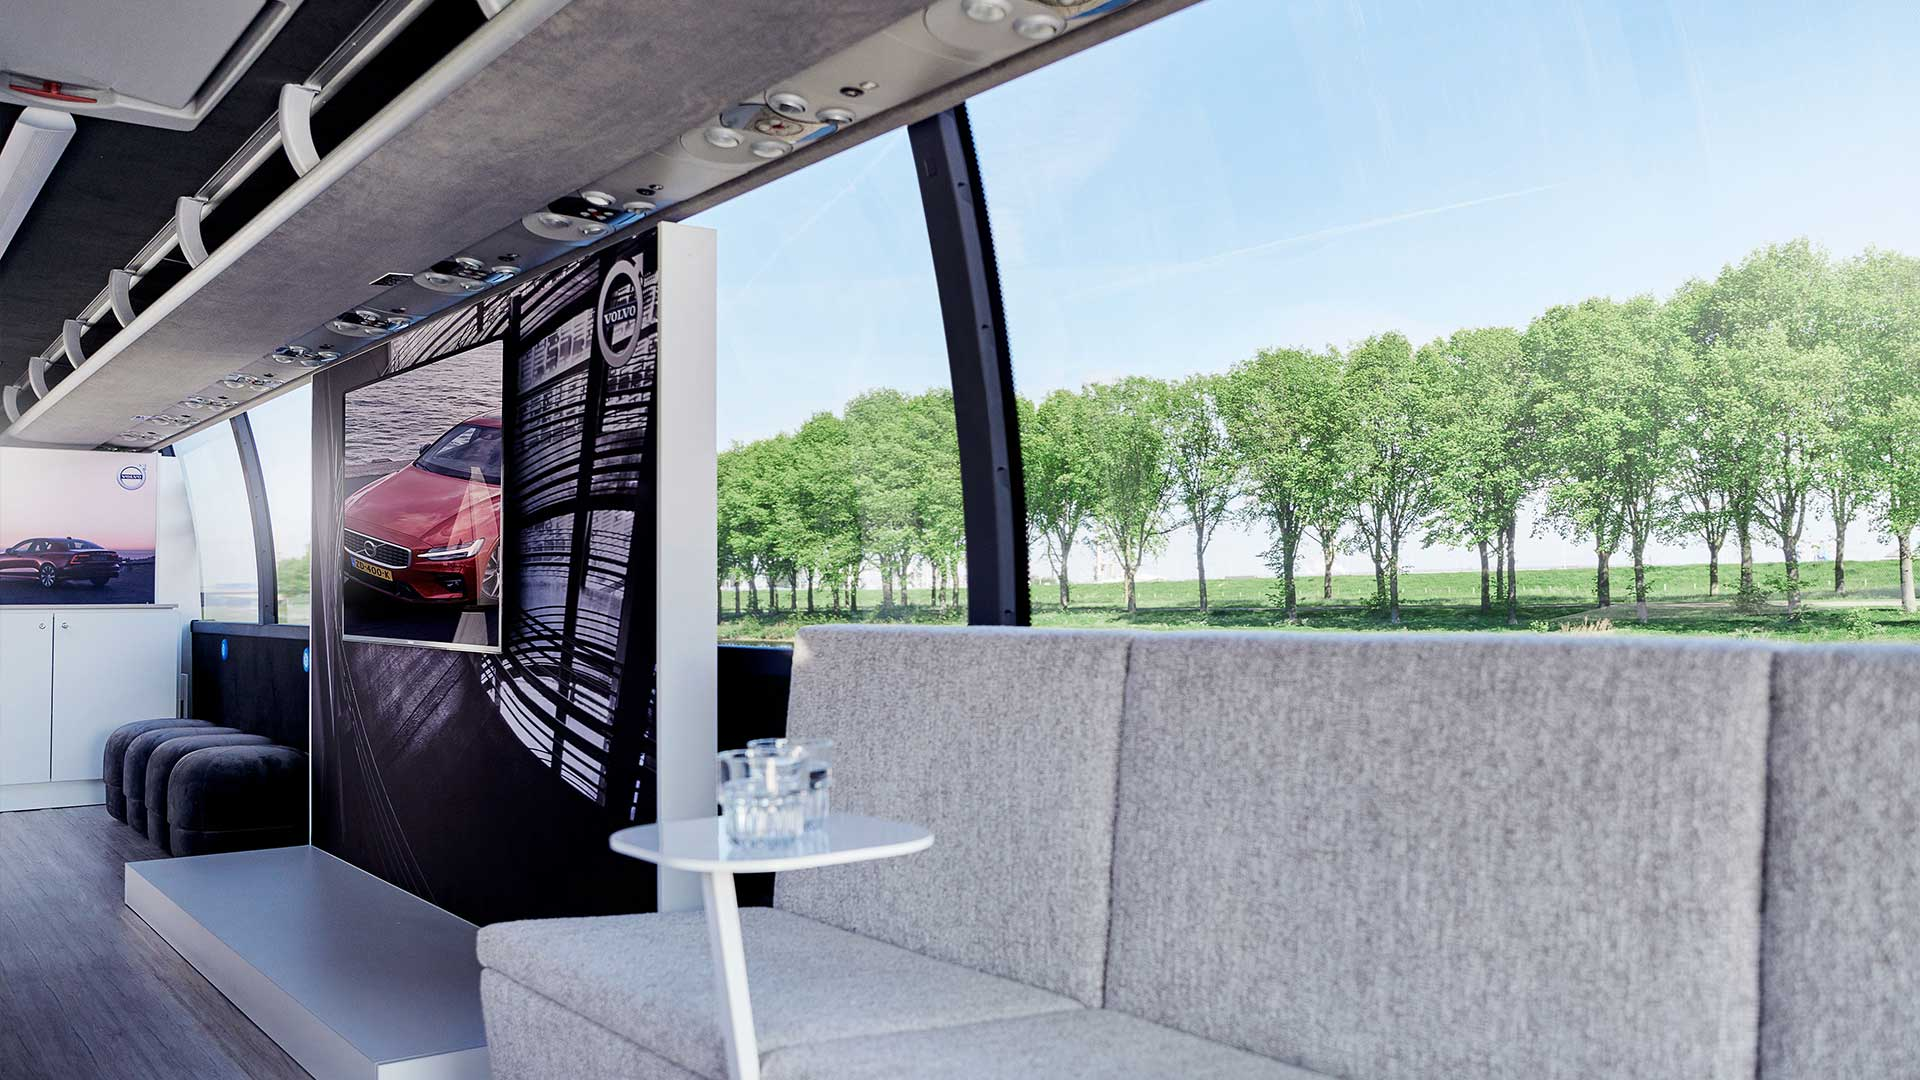 De Volvo S60 pop-up showroom